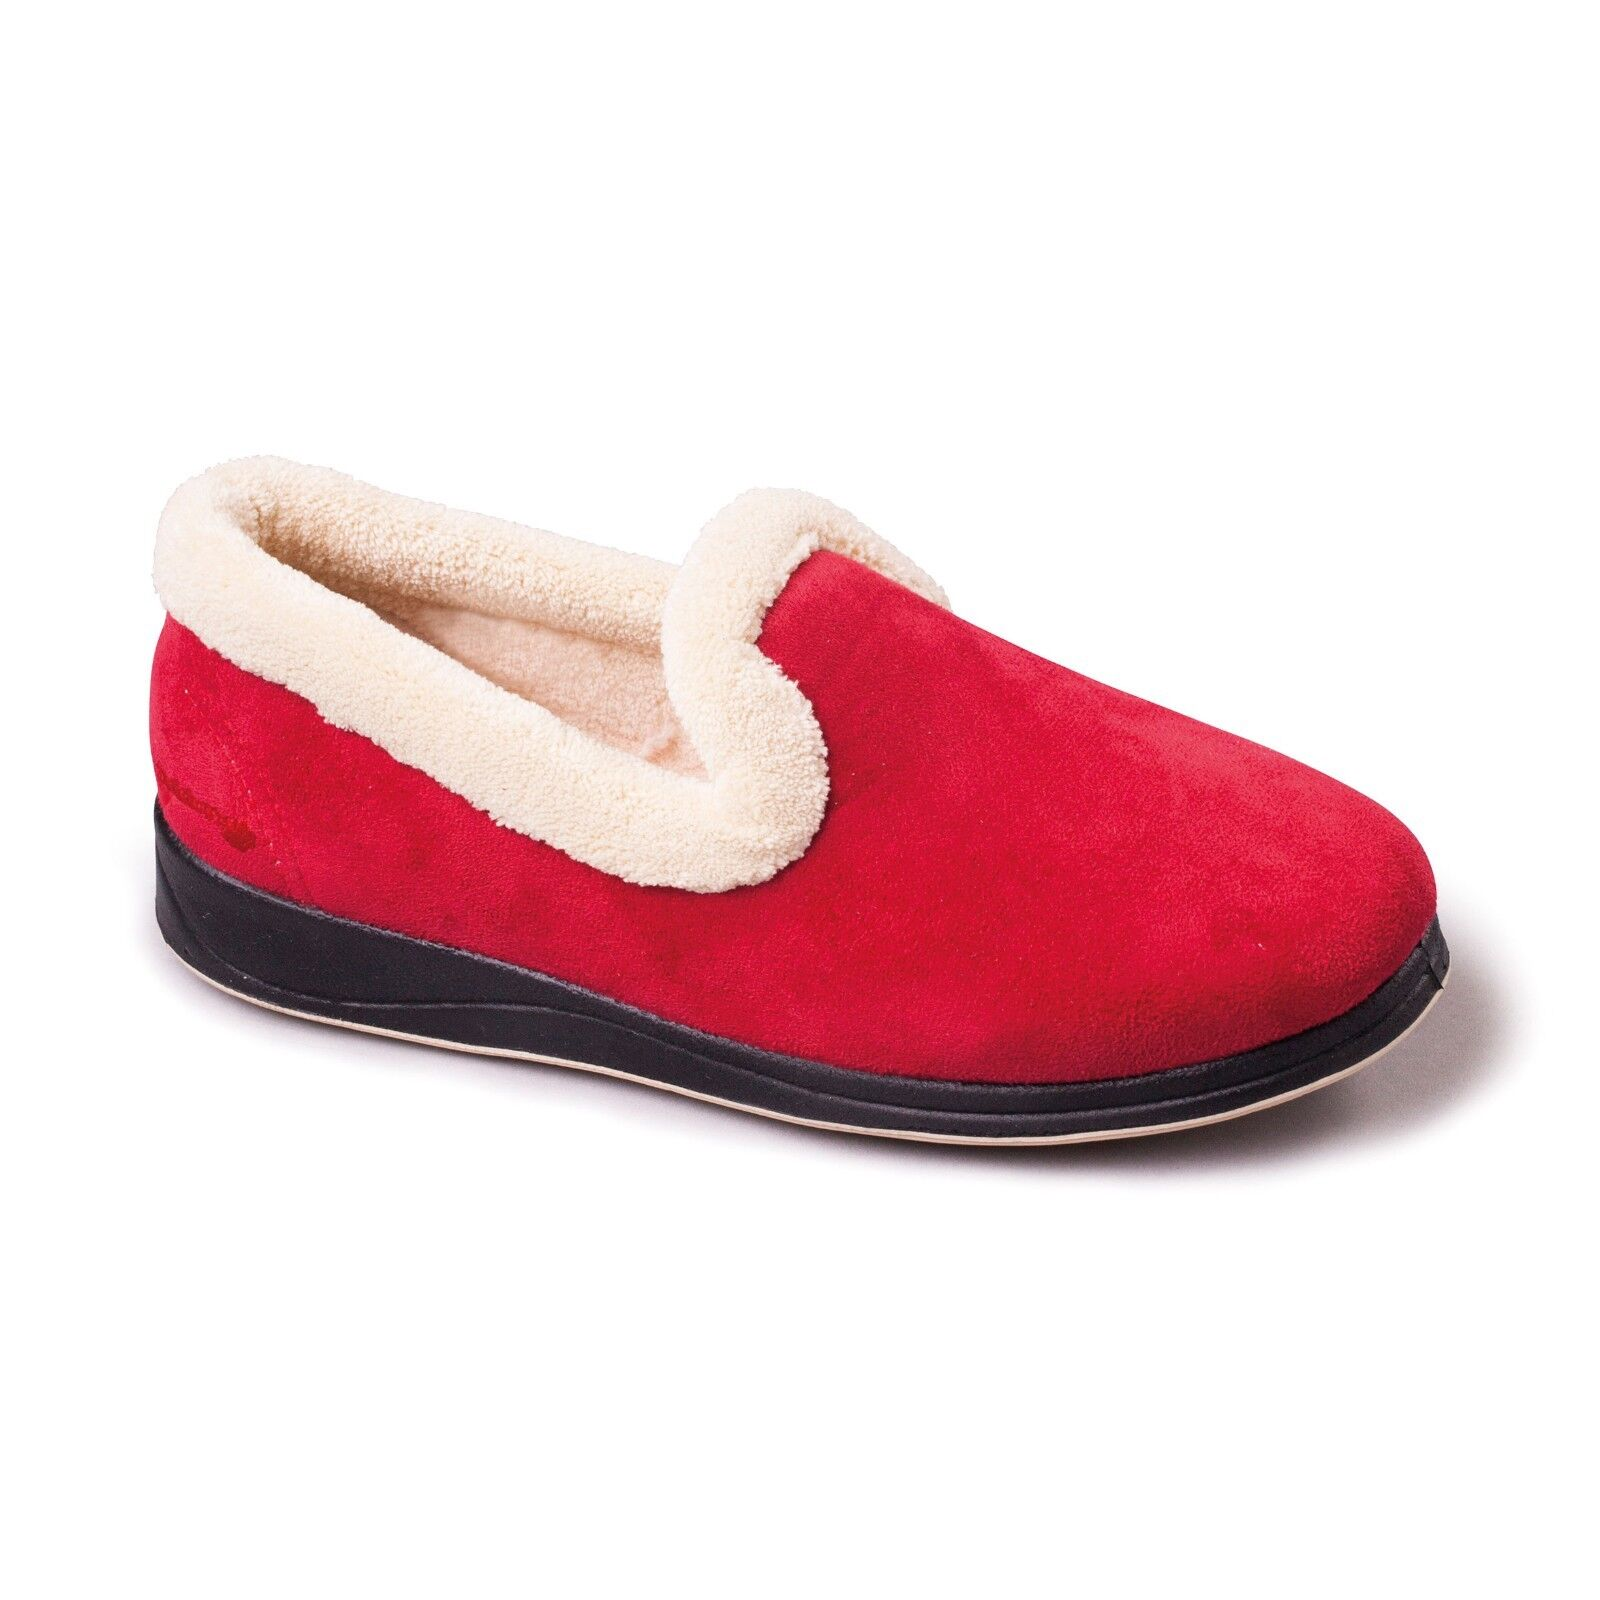 Padders REPOSE Ladies Memory Foam Comfy Extra Wide EE Fitting Slippers Red